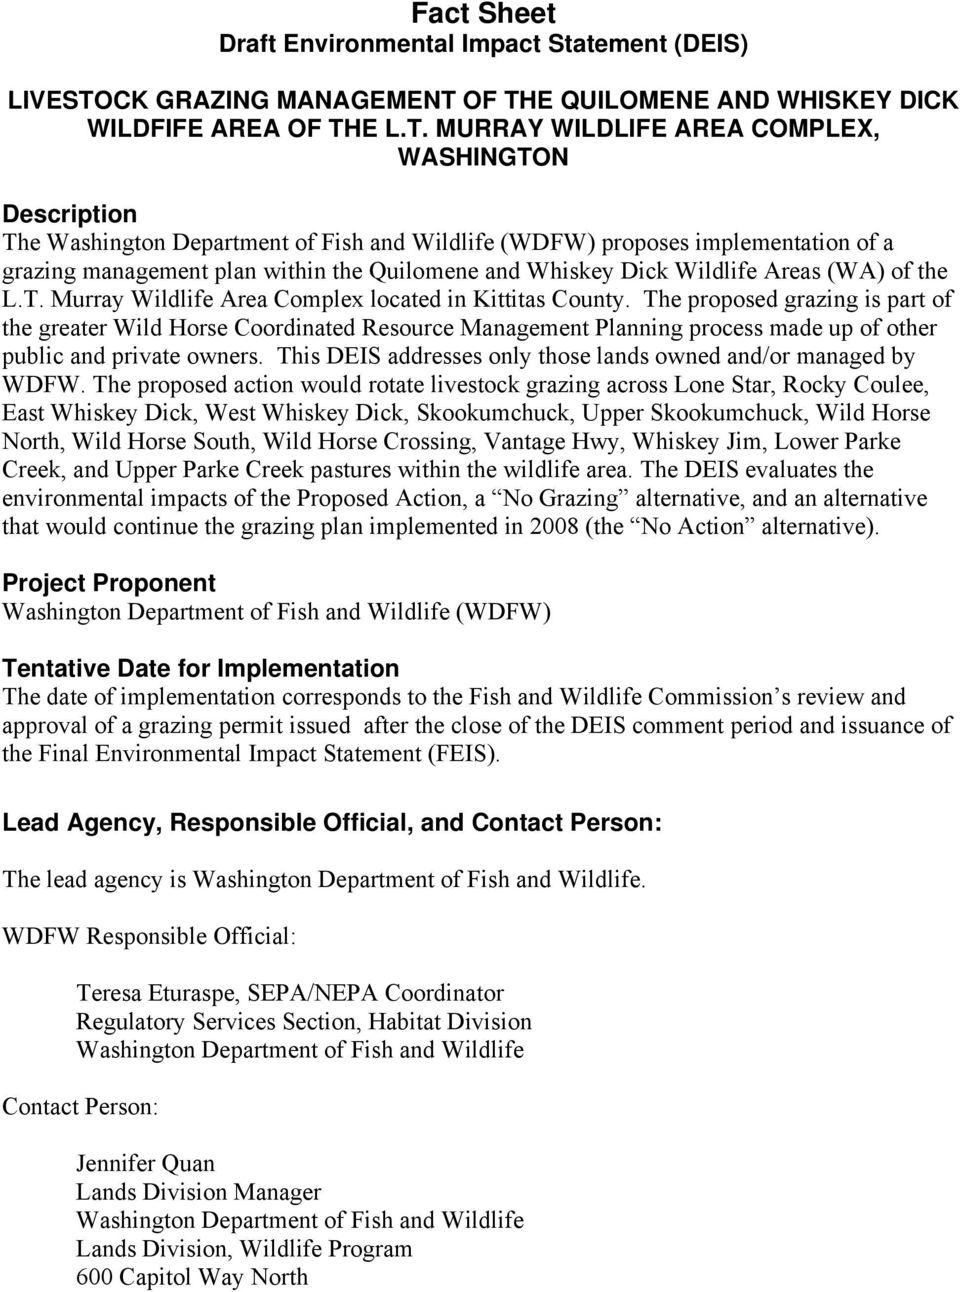 OF THE QUILOMENE AND WHISKEY DICK WILDFIFE AREA OF THE L.T. MURRAY WILDLIFE AREA COMPLEX, WASHINGTON Description The Washington Department of Fish and Wildlife (WDFW) proposes implementation of a